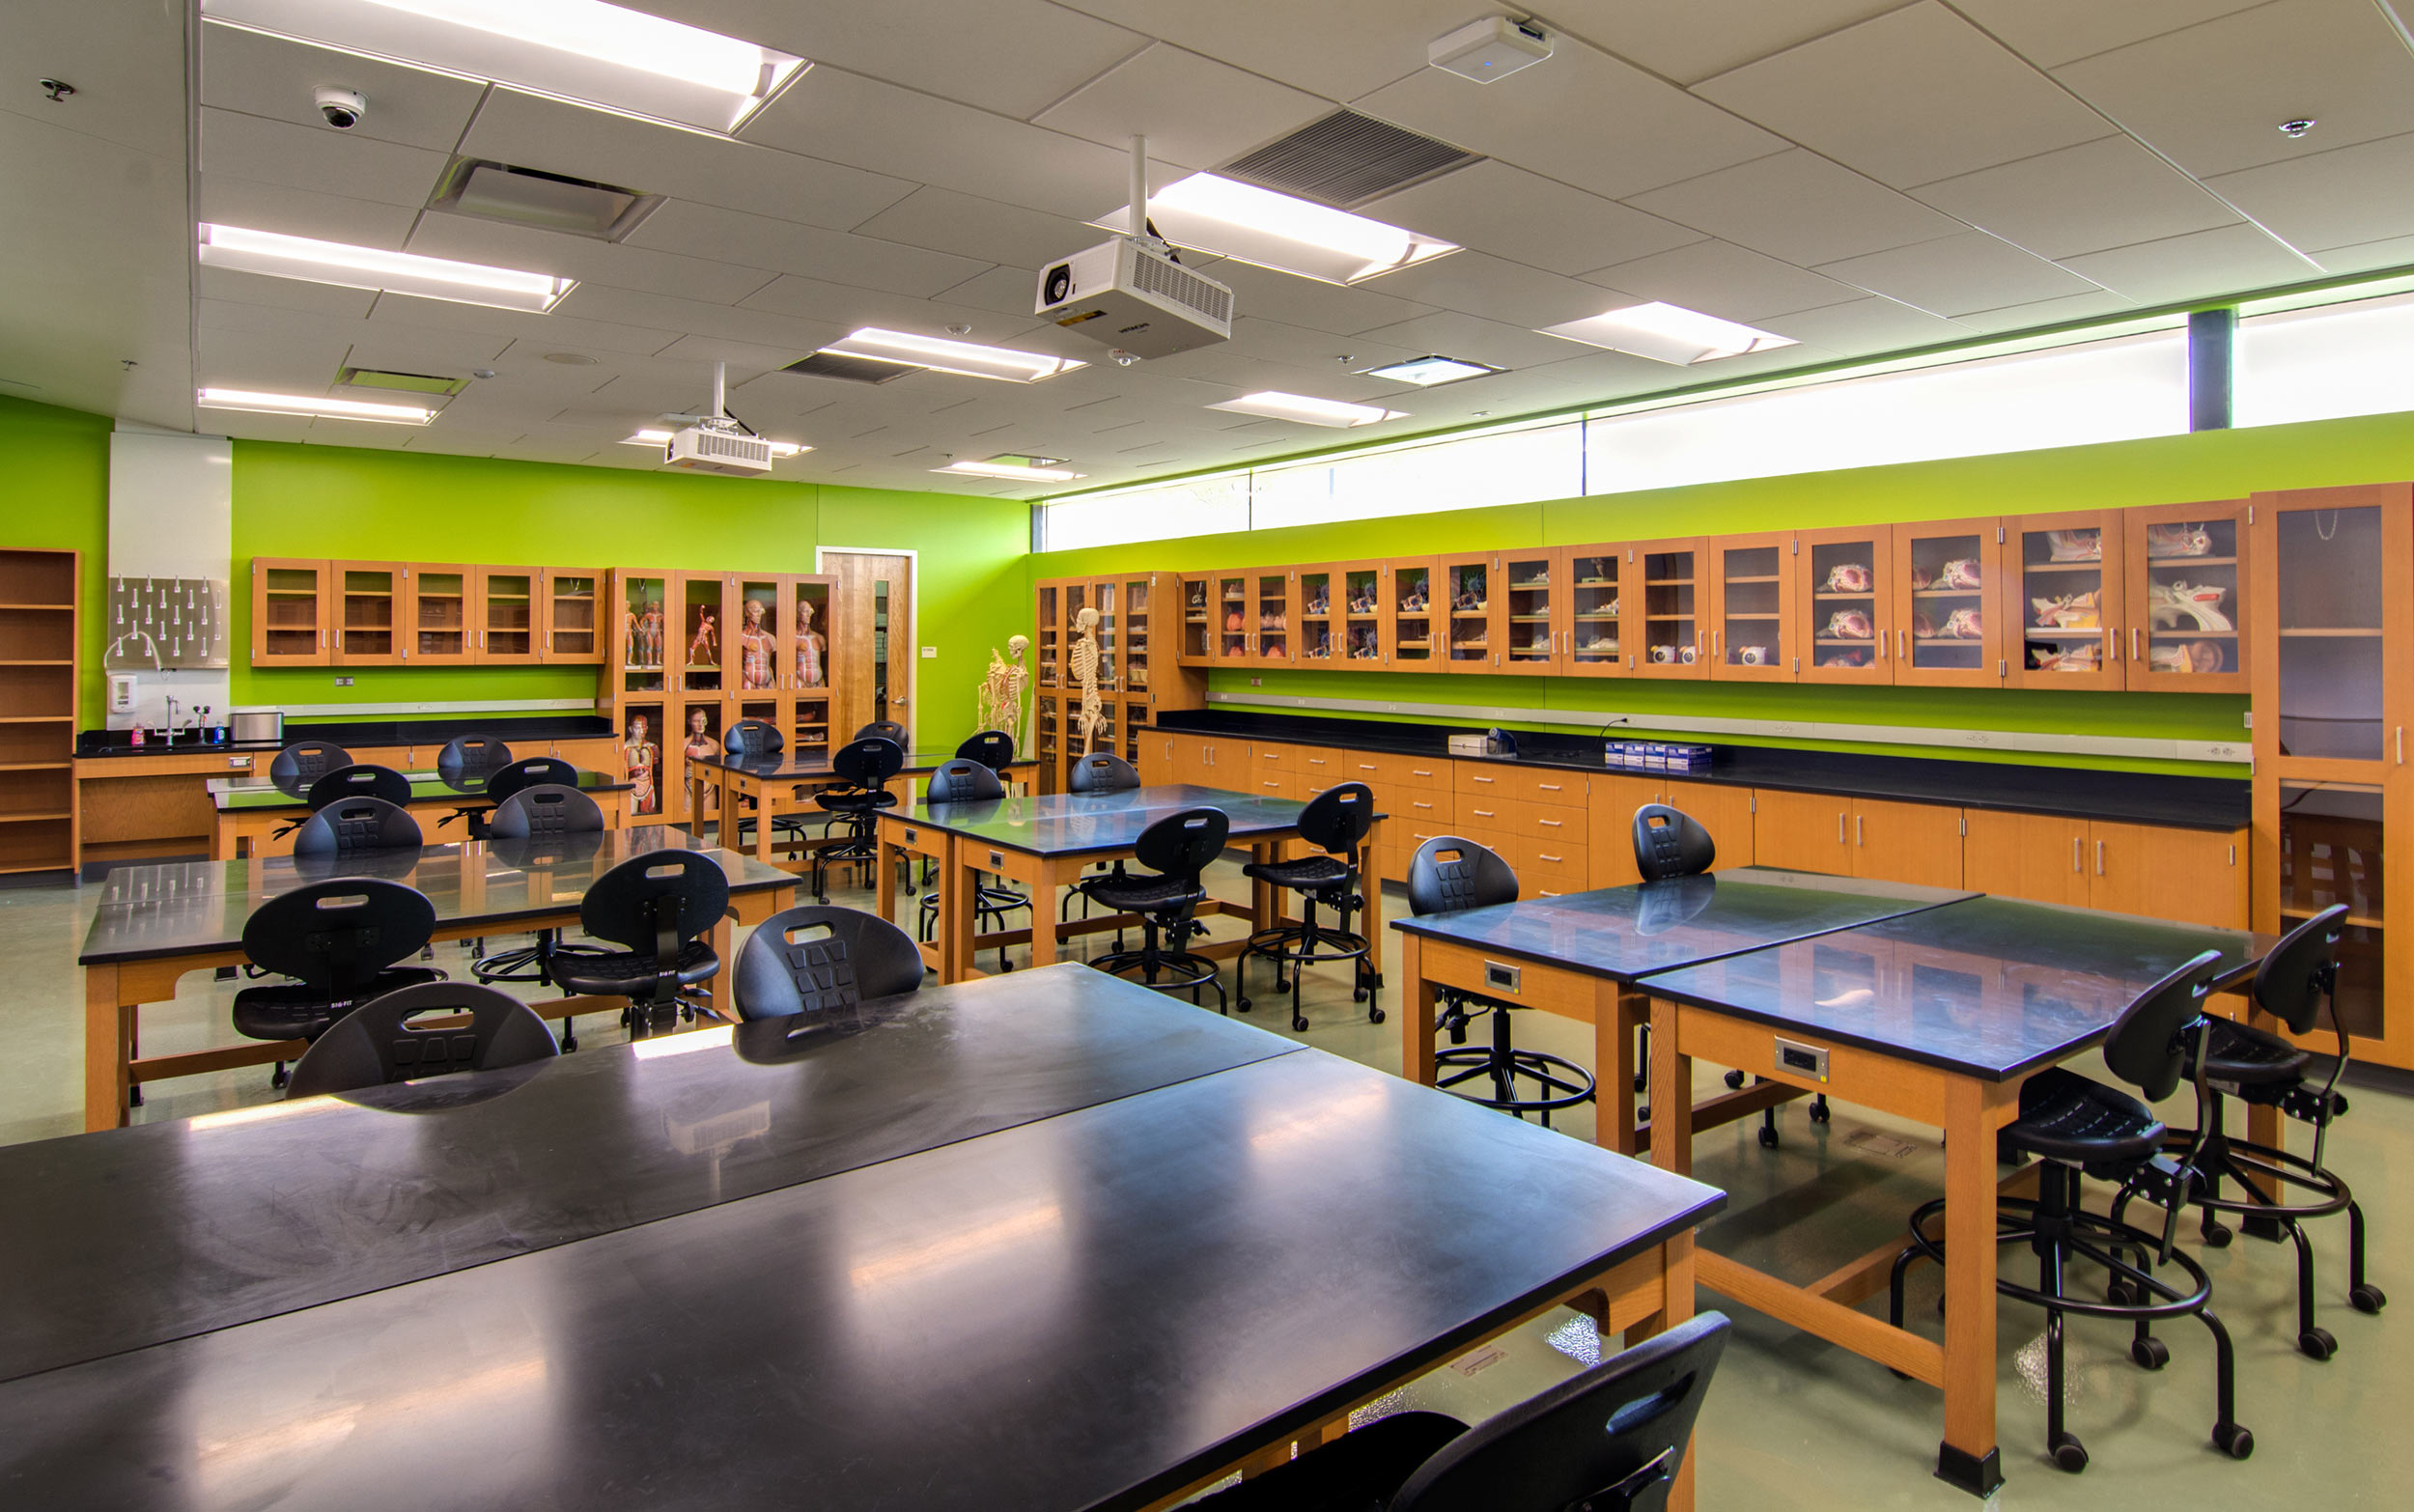 Central-Arizona-College-Sciences-10.jpg